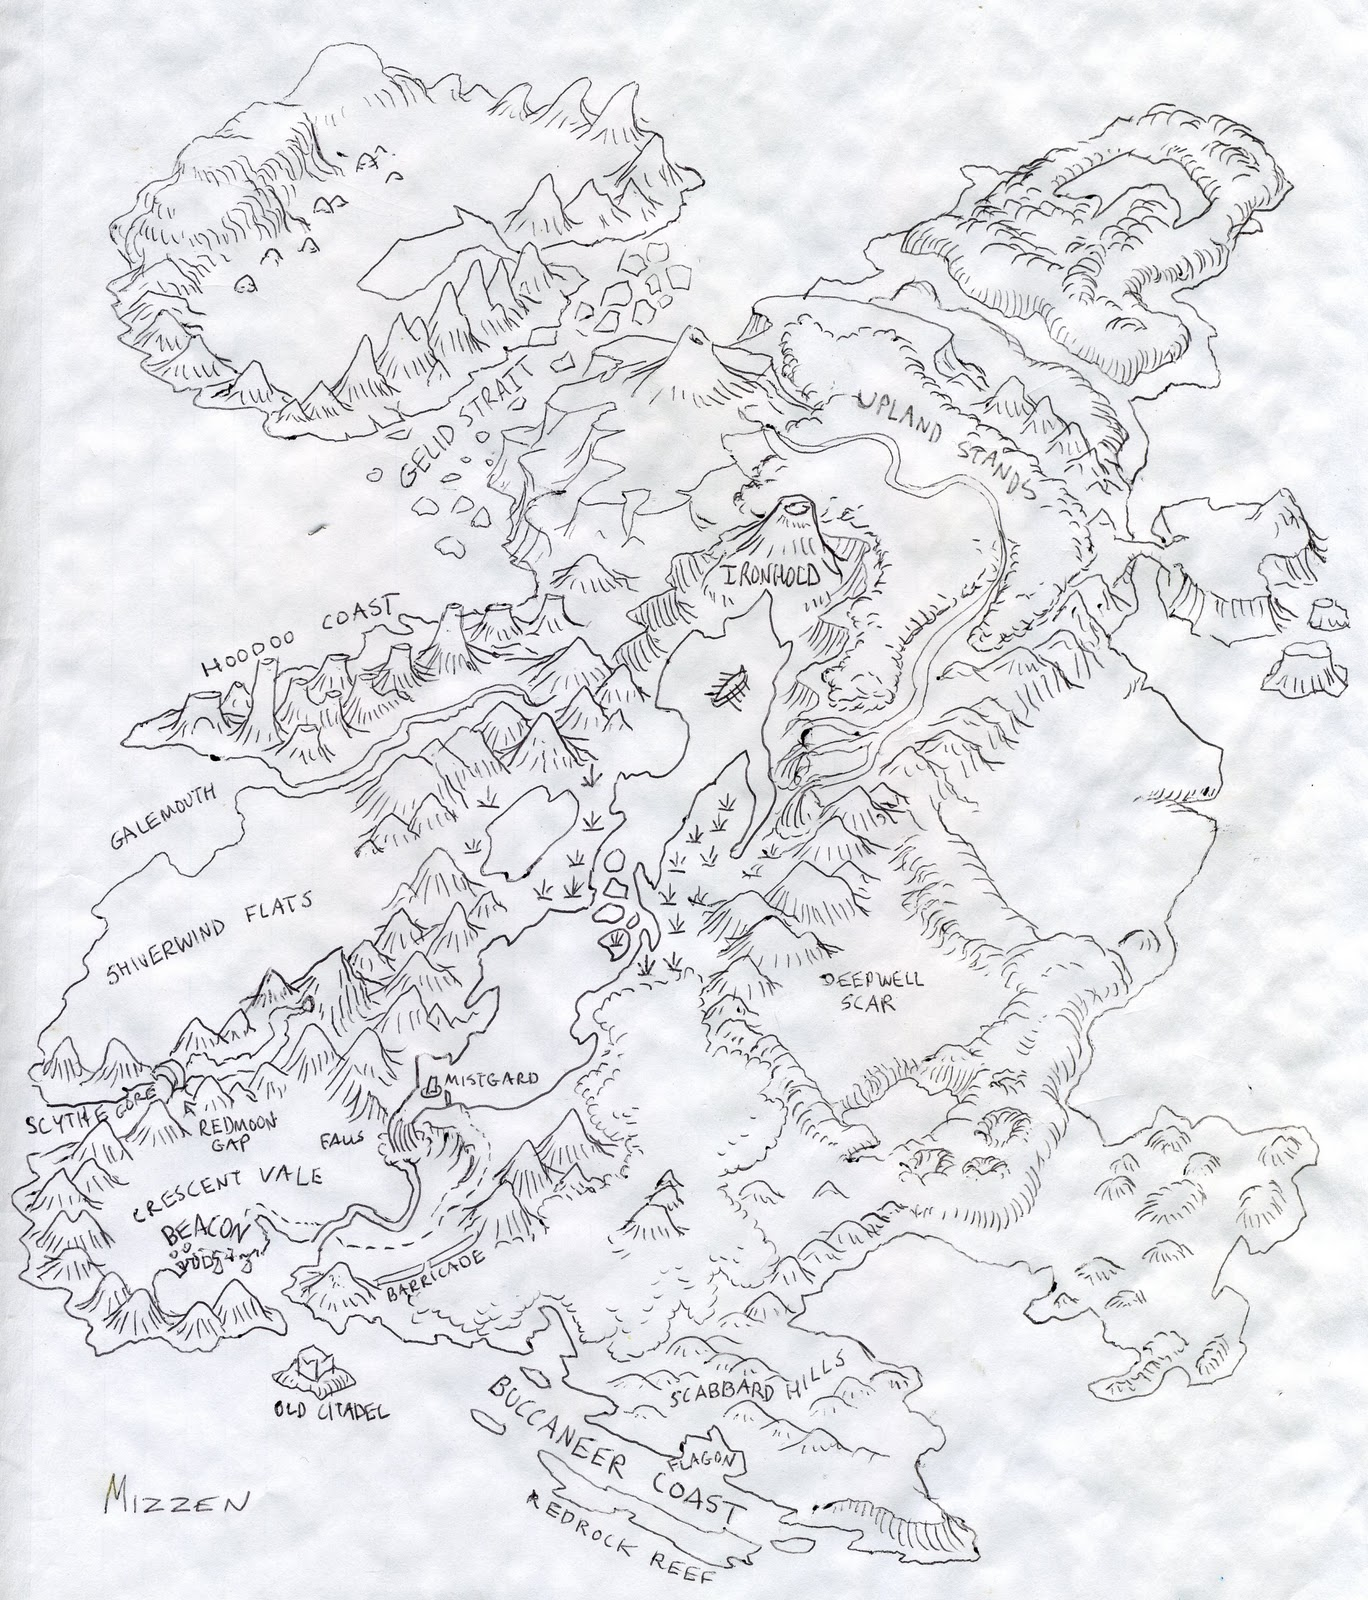 This is a mini-campaign map I drew a few years back. Have fun ...